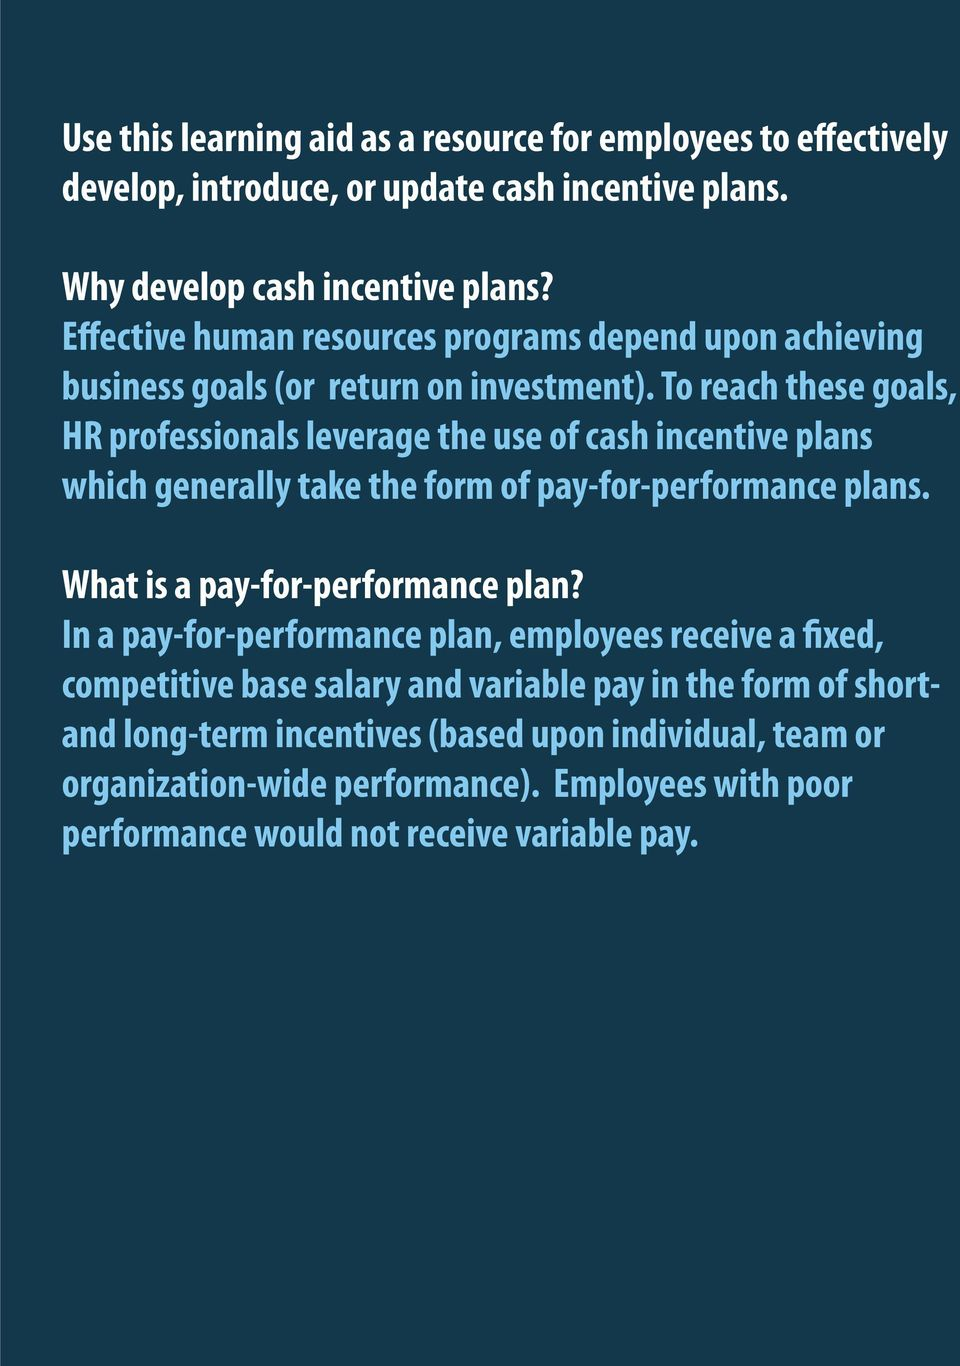 To reach these goals, HR professionals leverage the use of cash incentive plans which generally take the form of pay-for-performance plans. What is a pay-for-performance plan?